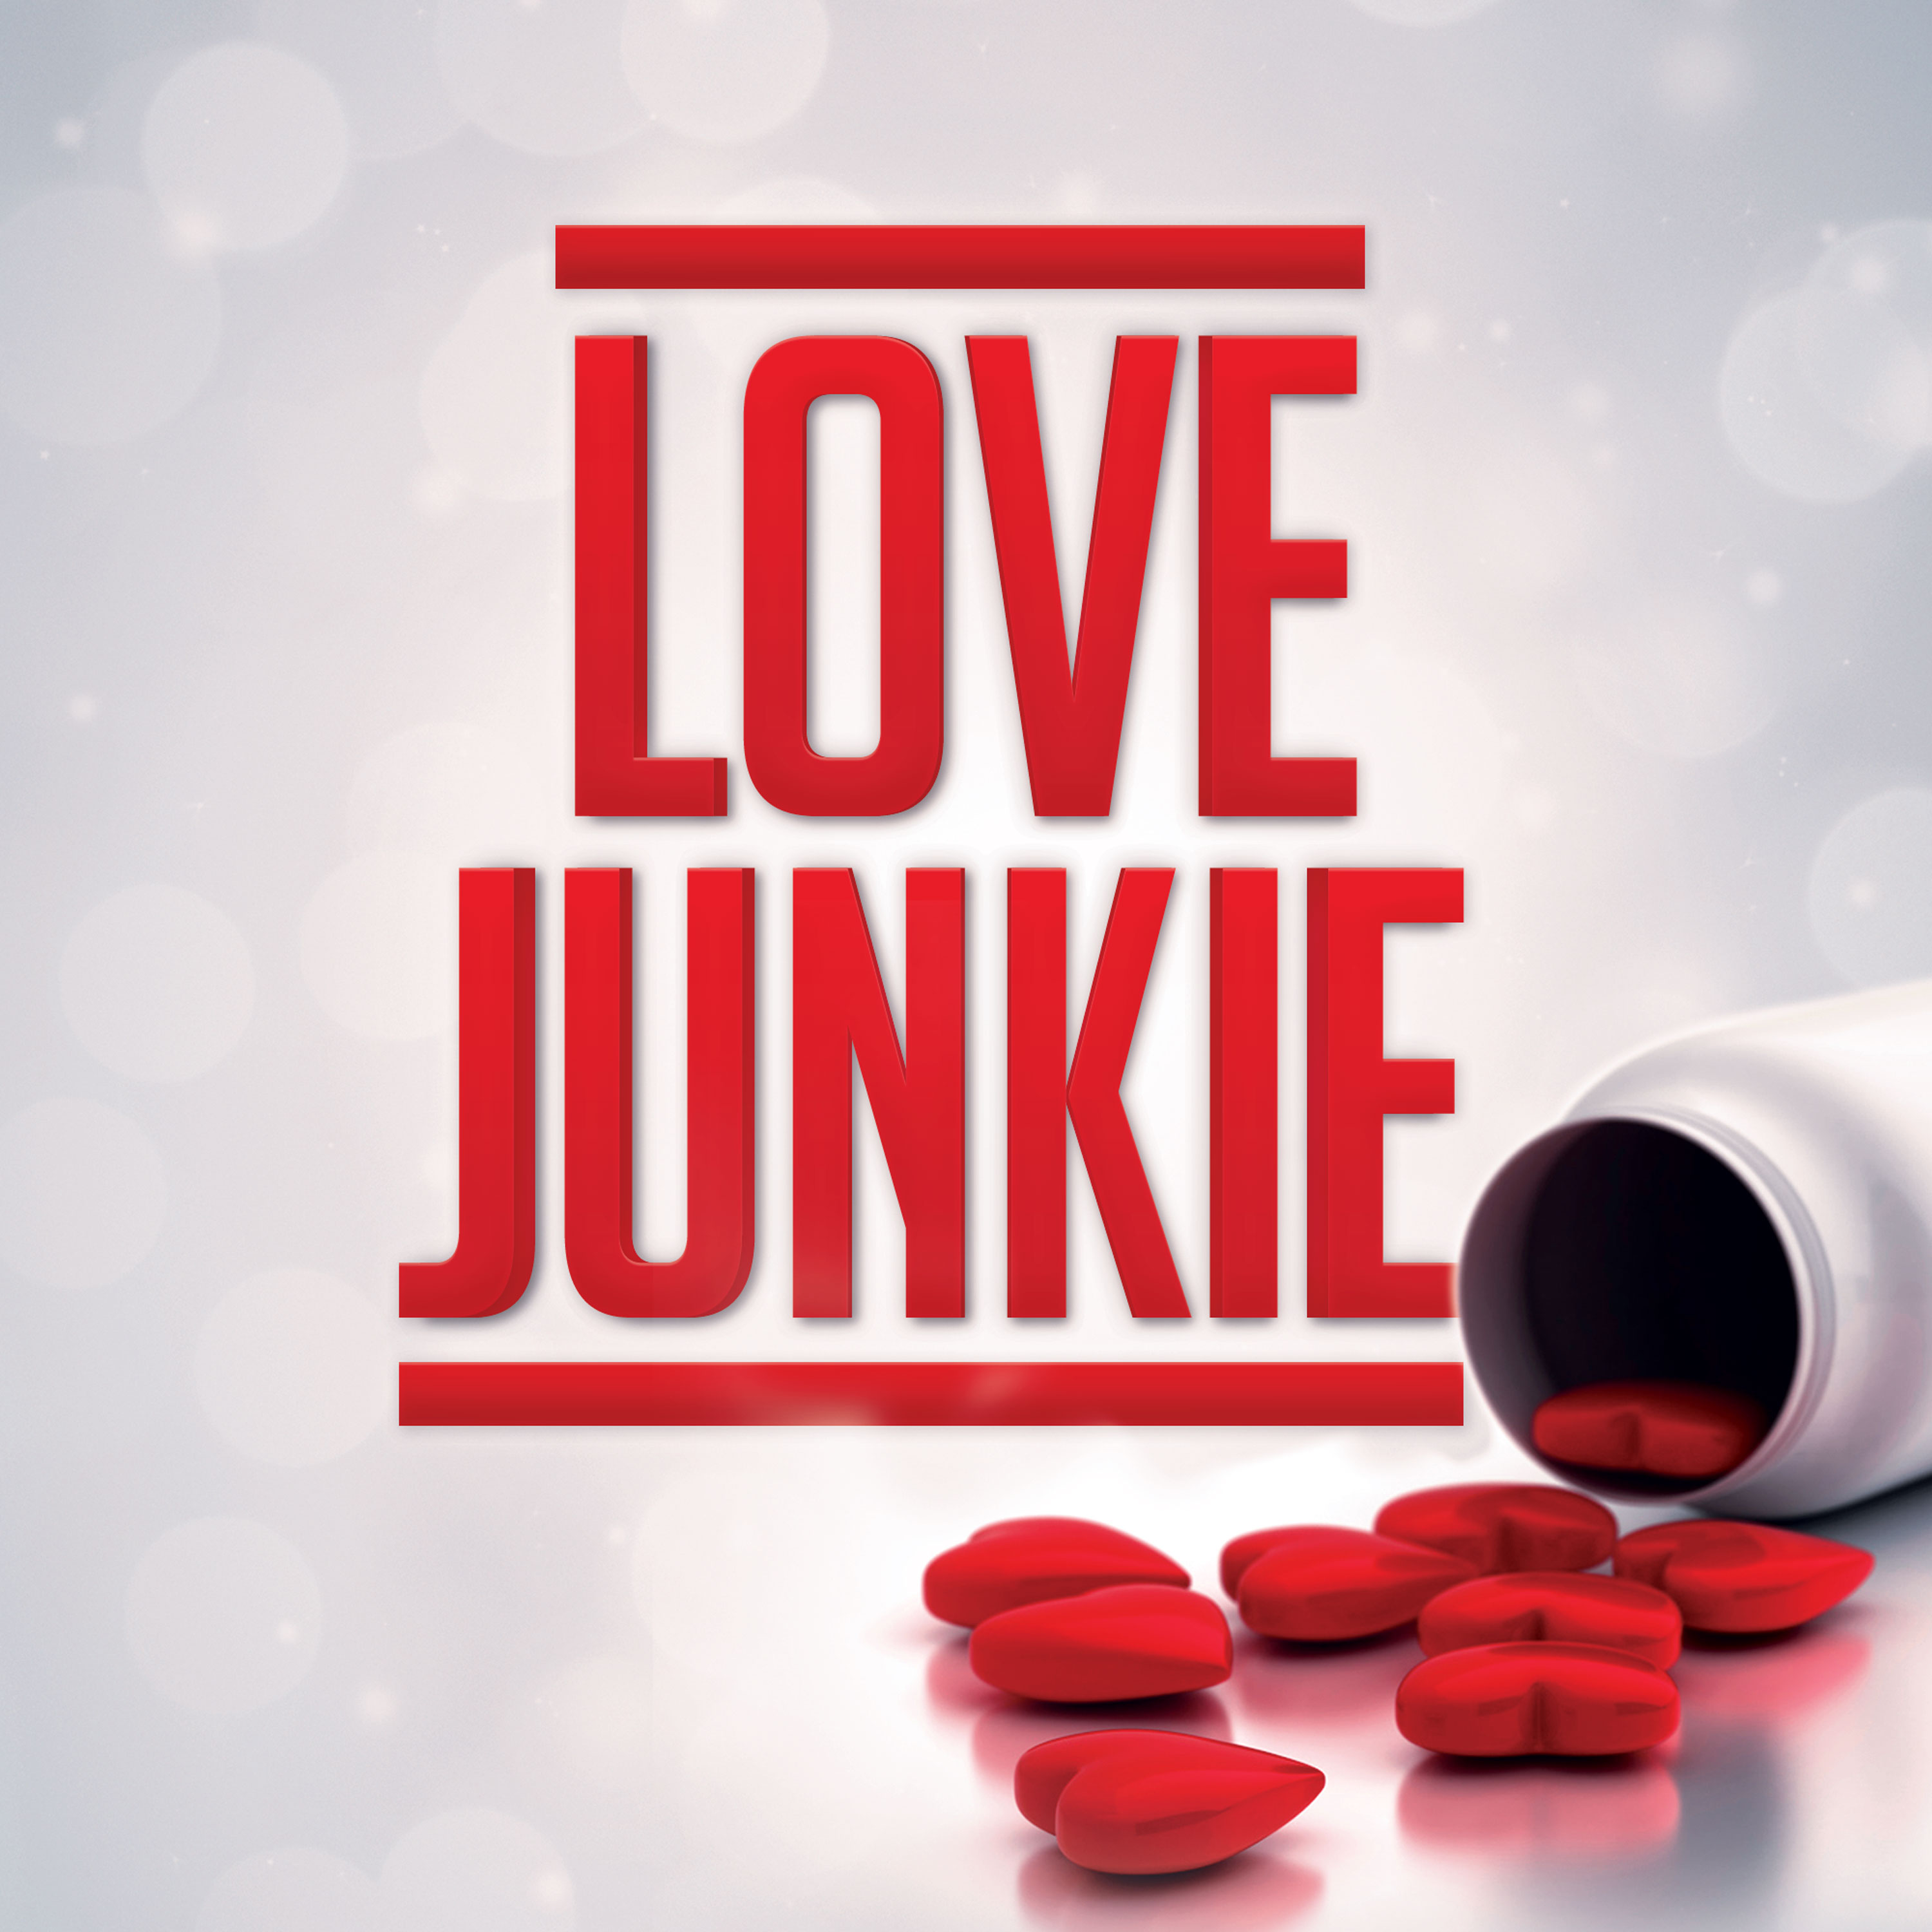 Love Junkie: Help for the Relationship Obsessed, Love Addicted, & Codependent - Love Junkie & New Directions